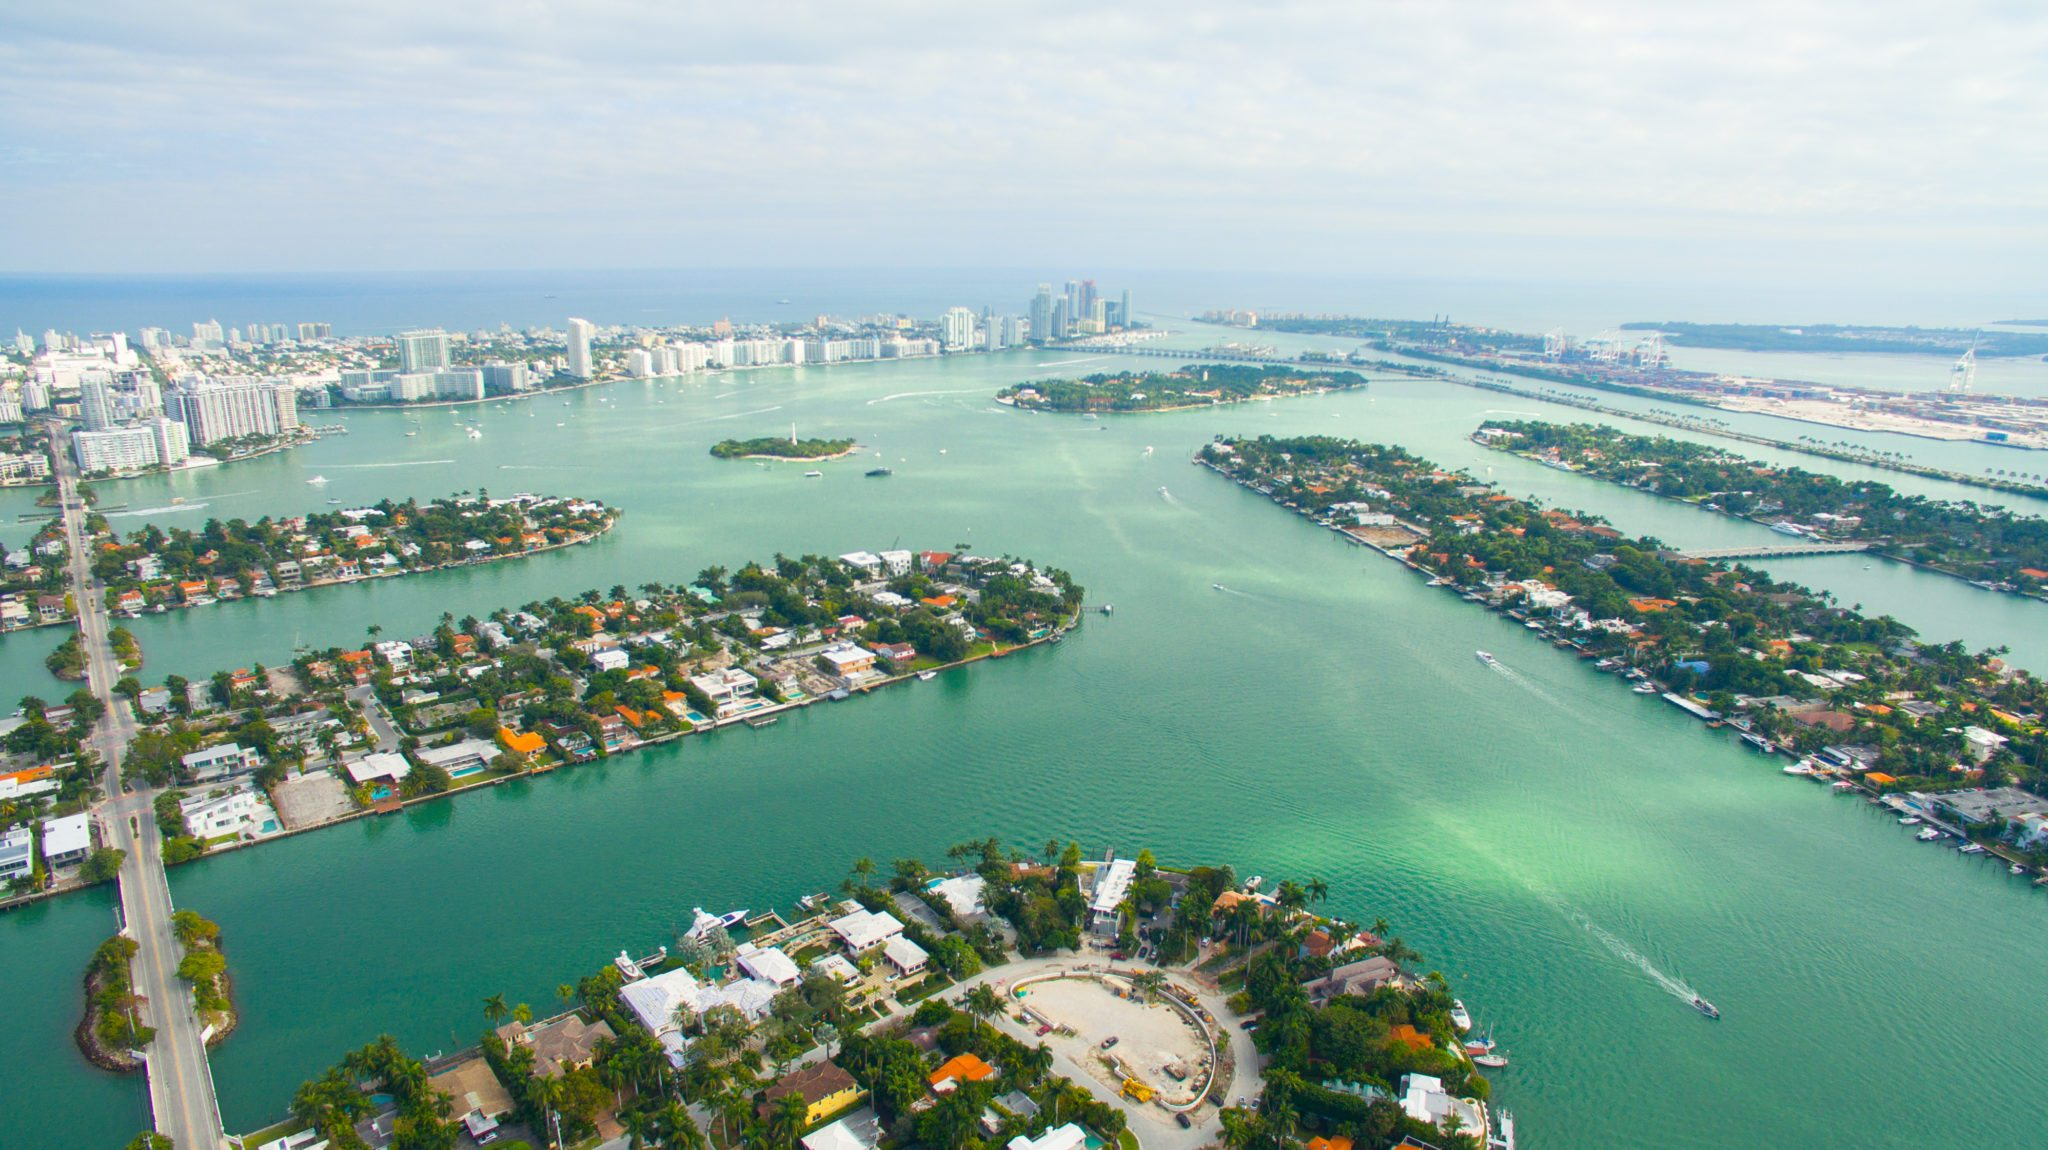 The 6 Islands that Make Up the Venetian Islands